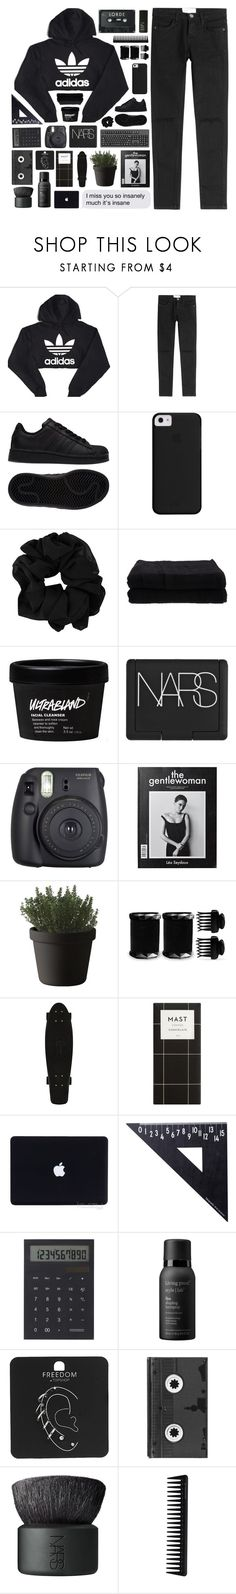 """#380"" by oh-my-rainbow ❤ liked on Polyvore featuring adidas, Current/Elliott, Home Source International, NARS Cosmetics, Fuji, Muuto, T3, Design Letters, IDEA International and Living Proof"